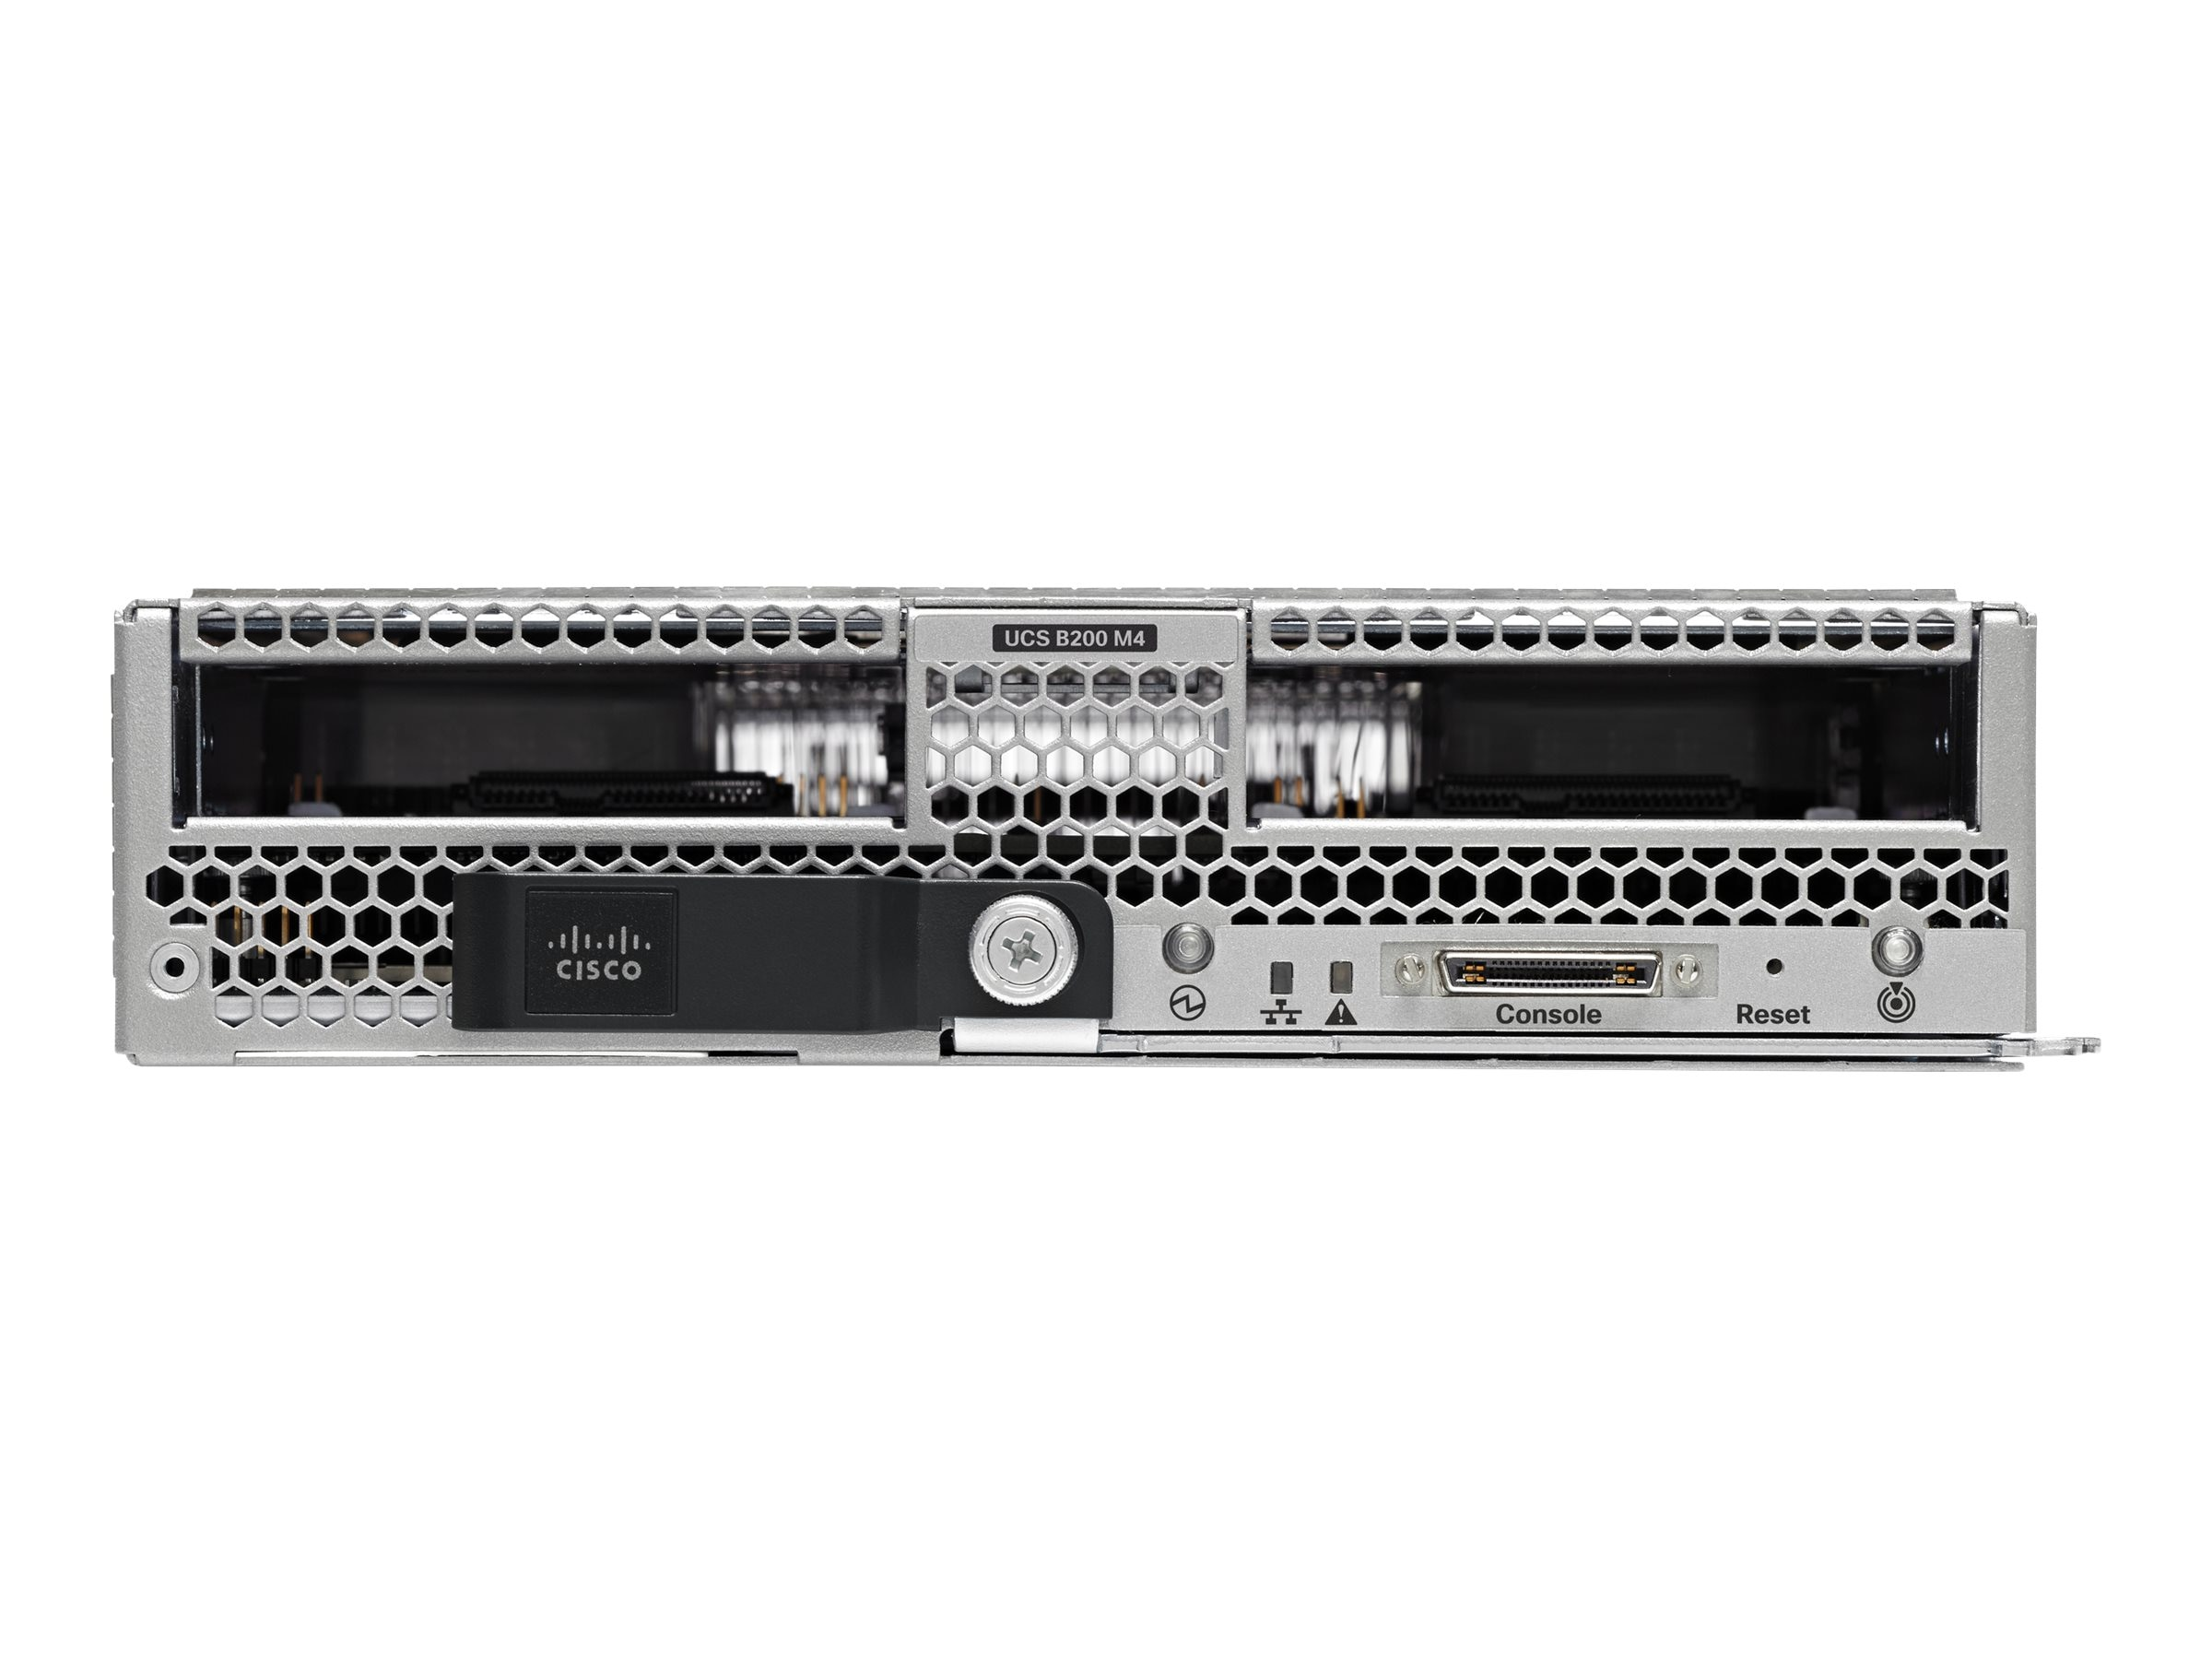 Cisco UCS SP8 B200 M4 Value (2x)Xeon E5-2660 v3 128GB, UCS-EZ8-B200M4-V